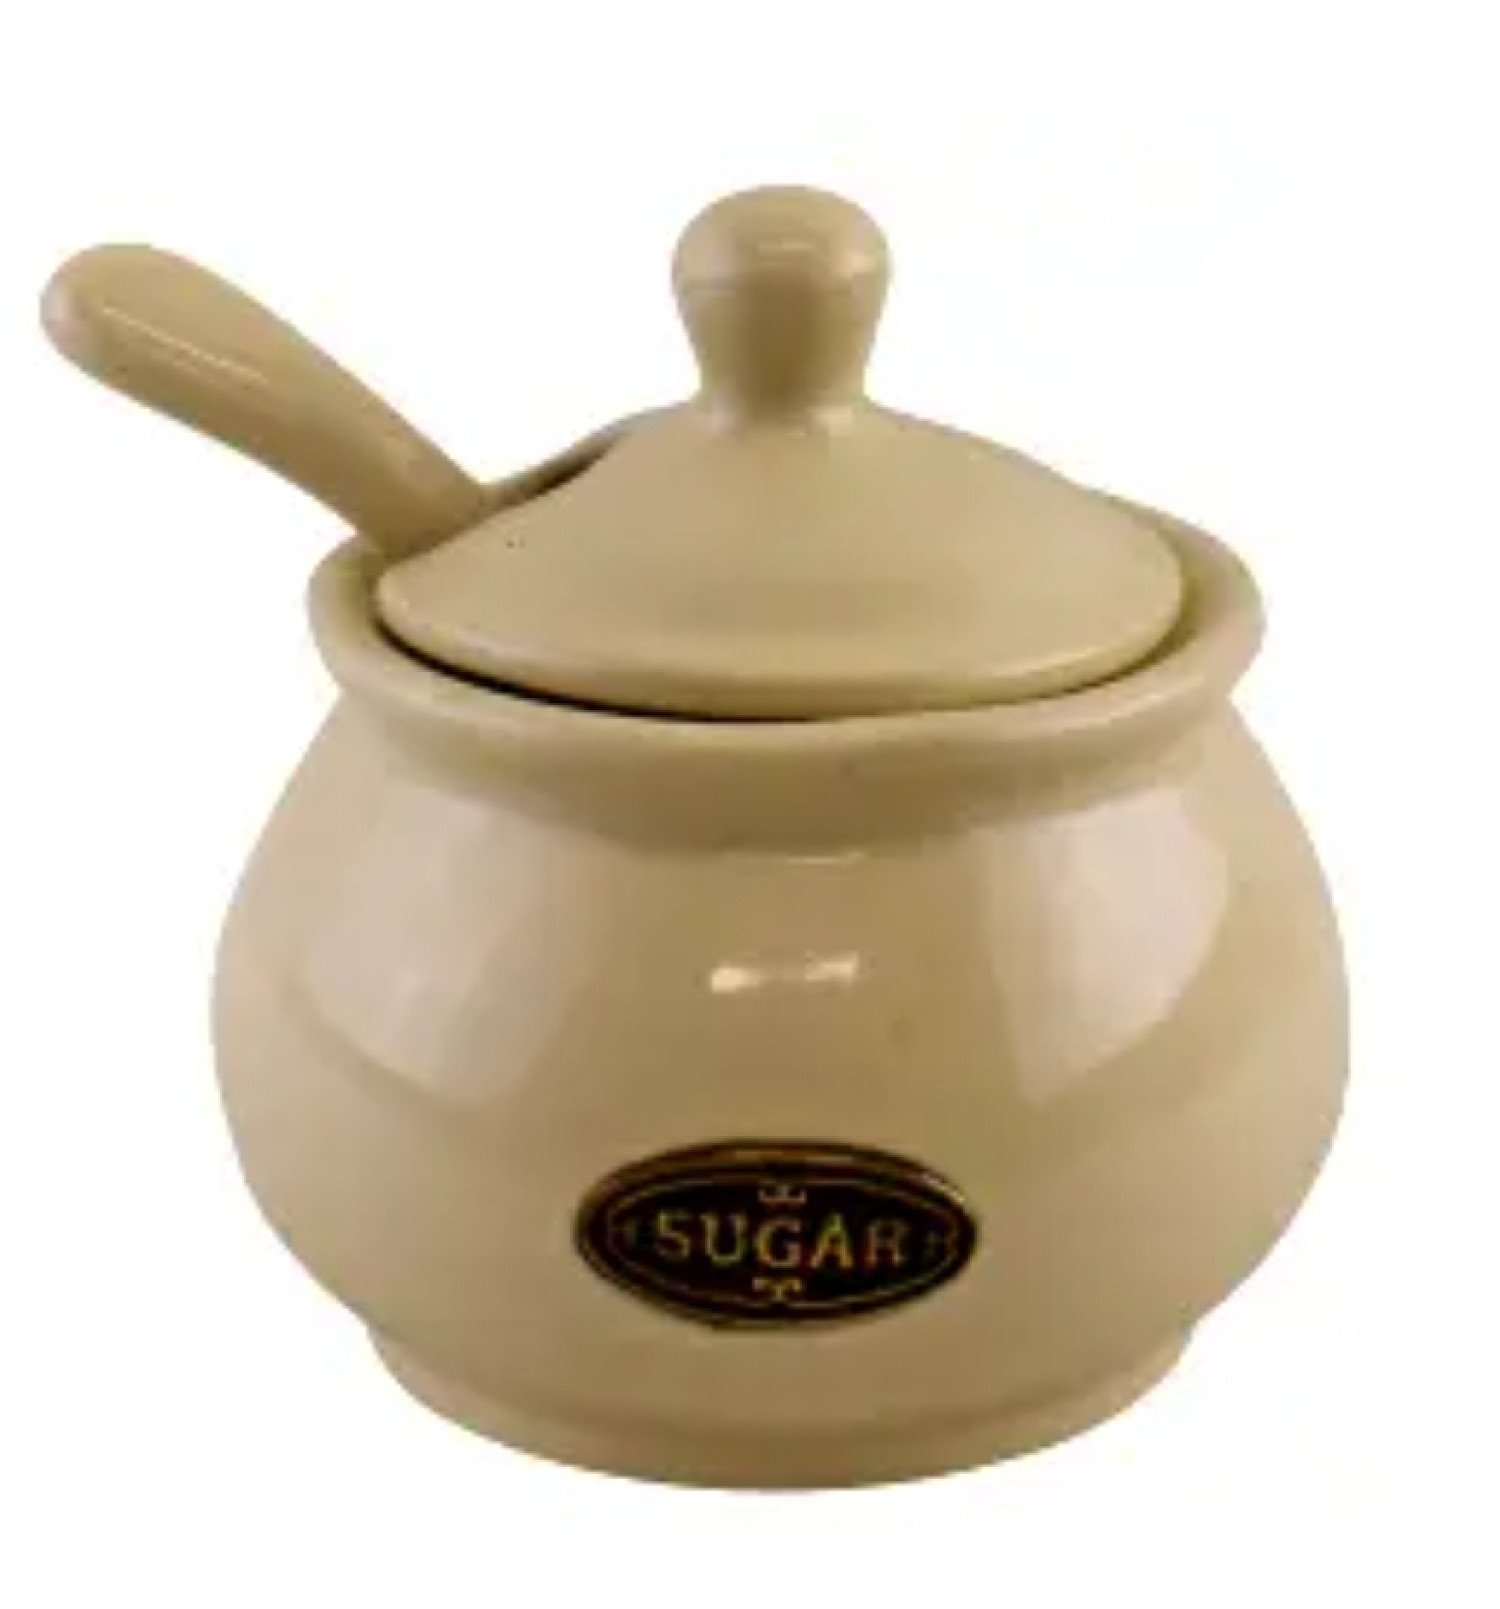 Country Cottage Cream Ceramic Teapot, Sugar Bowl With Lid & Spoon and Cream Jug. Worth £50